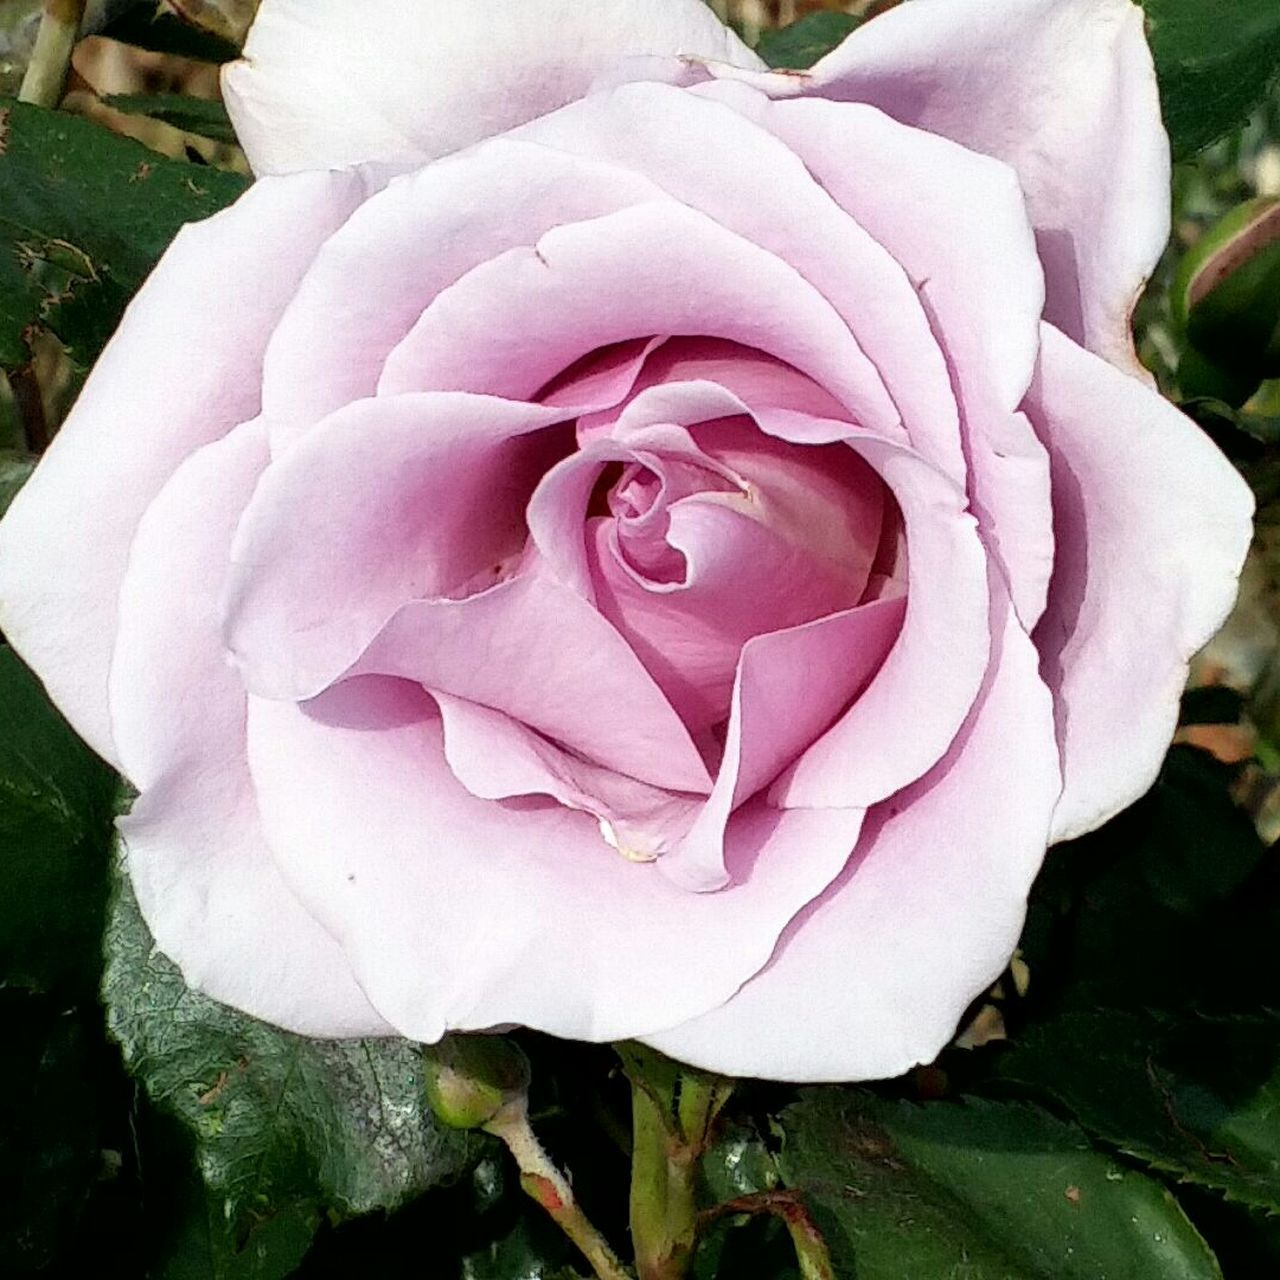 flower, petal, nature, fragility, beauty in nature, flower head, growth, rose - flower, plant, no people, close-up, freshness, pink color, outdoors, day, blooming